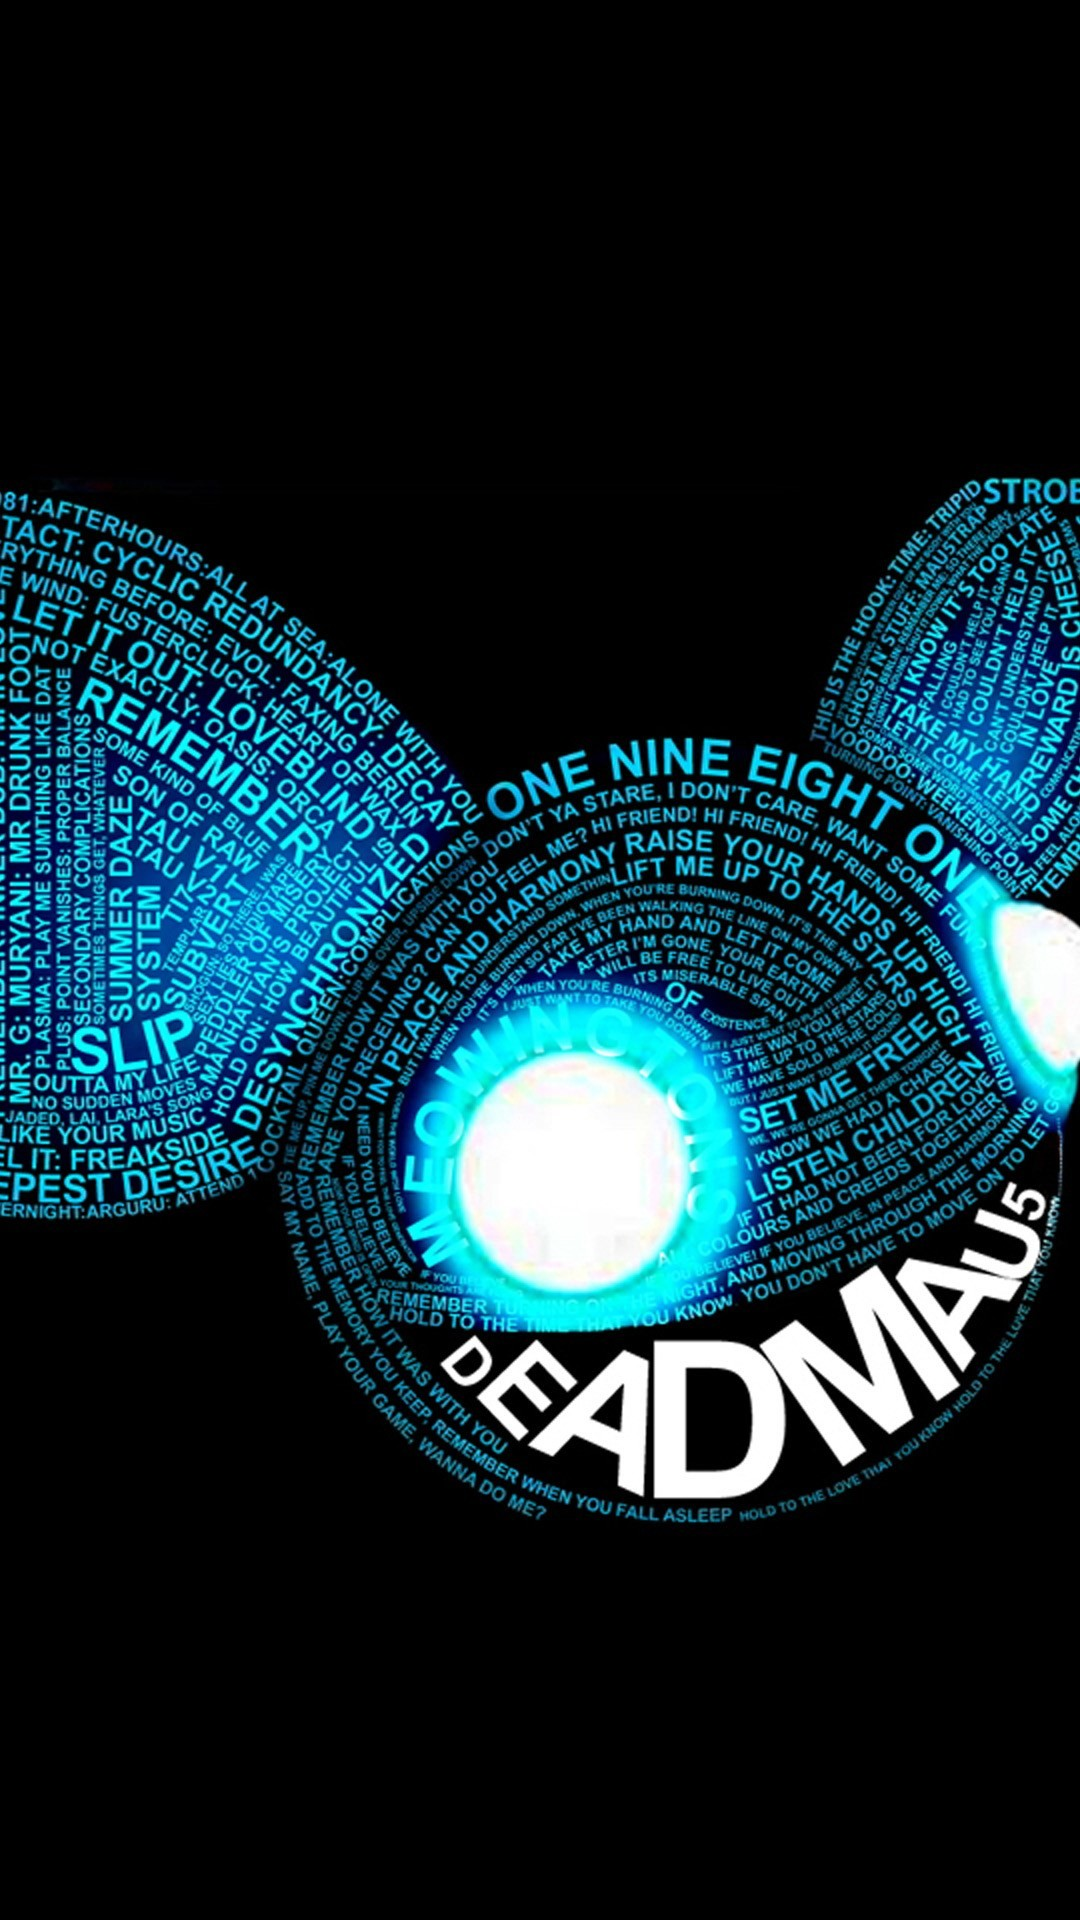 1080x1920 deadmau5 quotes hd wallpaper iphone 6 plus